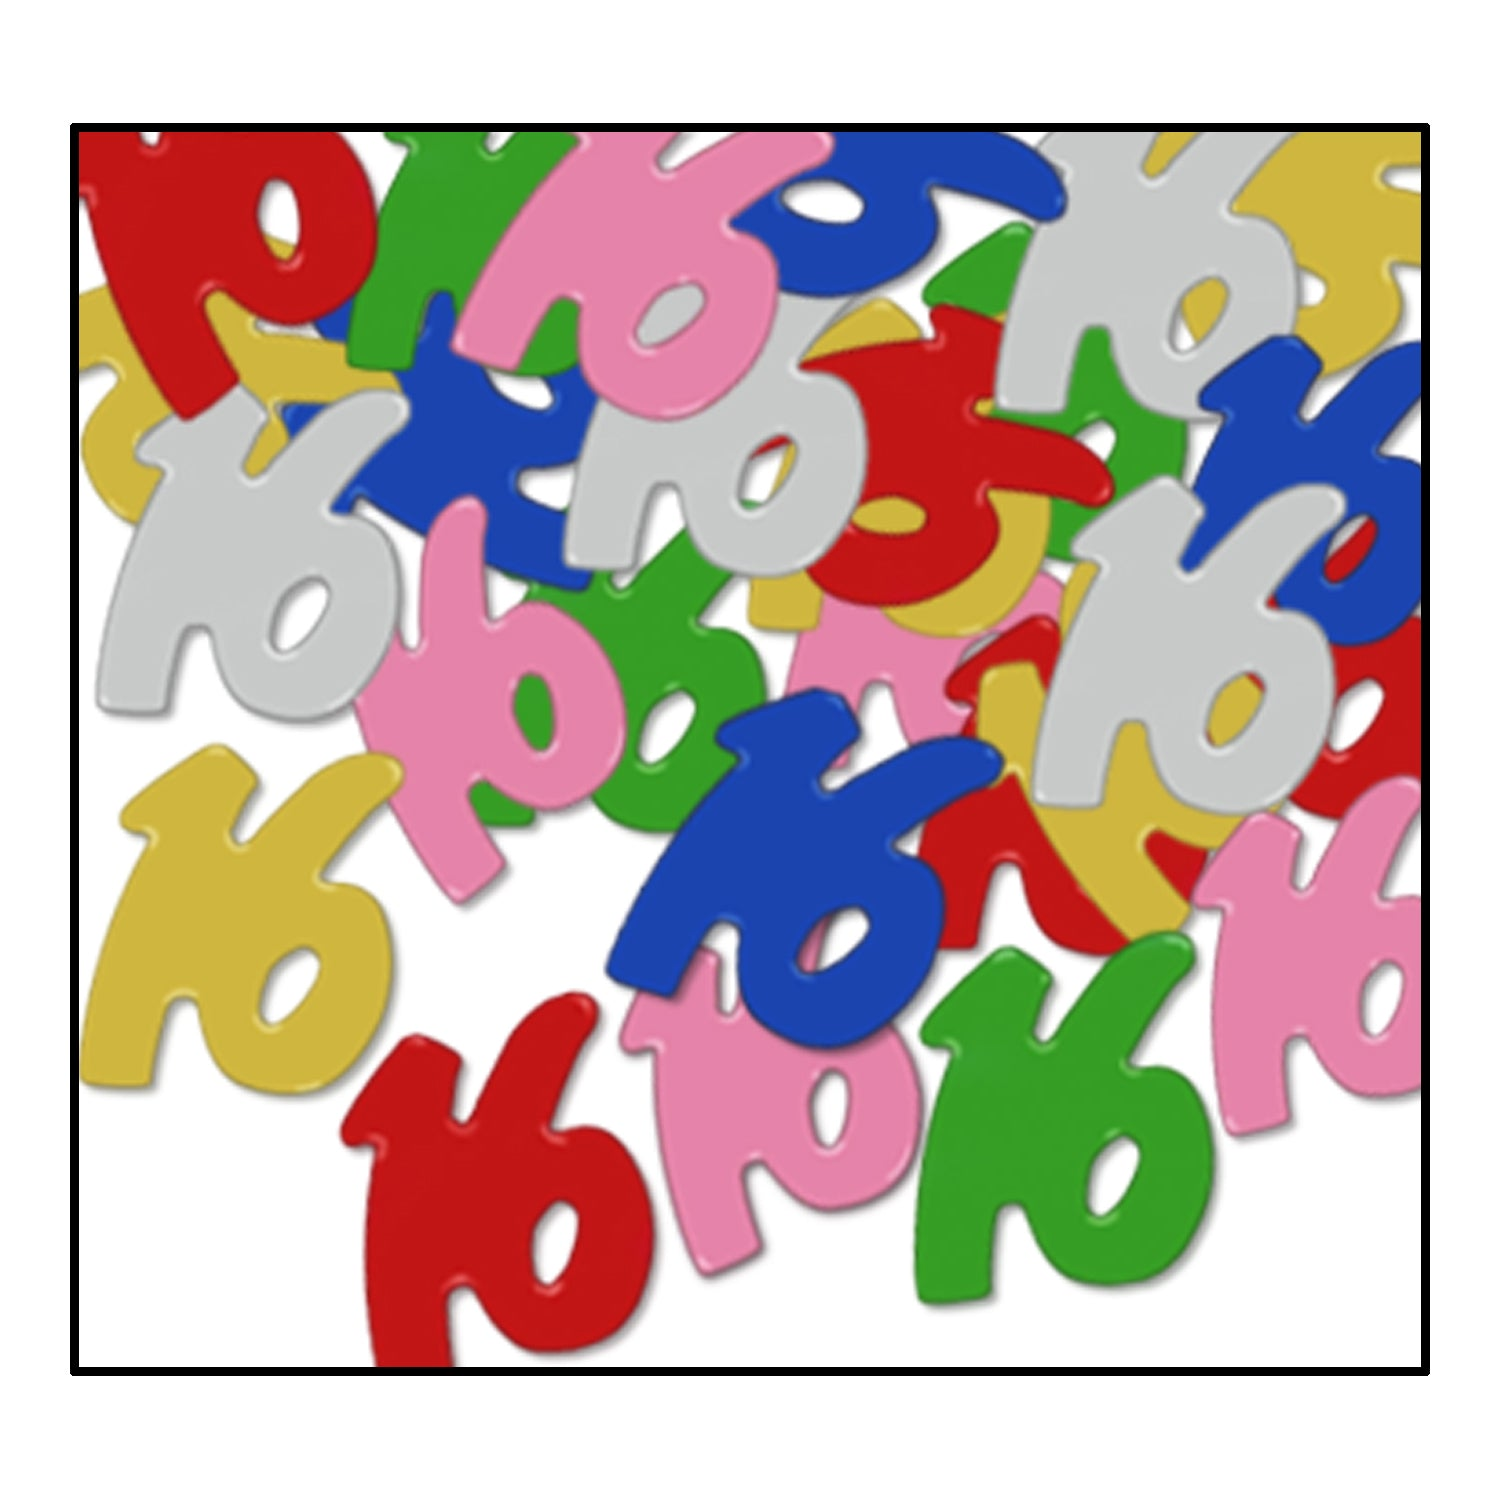 Confetti 16 Silhouettes (.5 Oz/Pkg) multi-color by Beistle - Sweet 16 Birthday Decorations